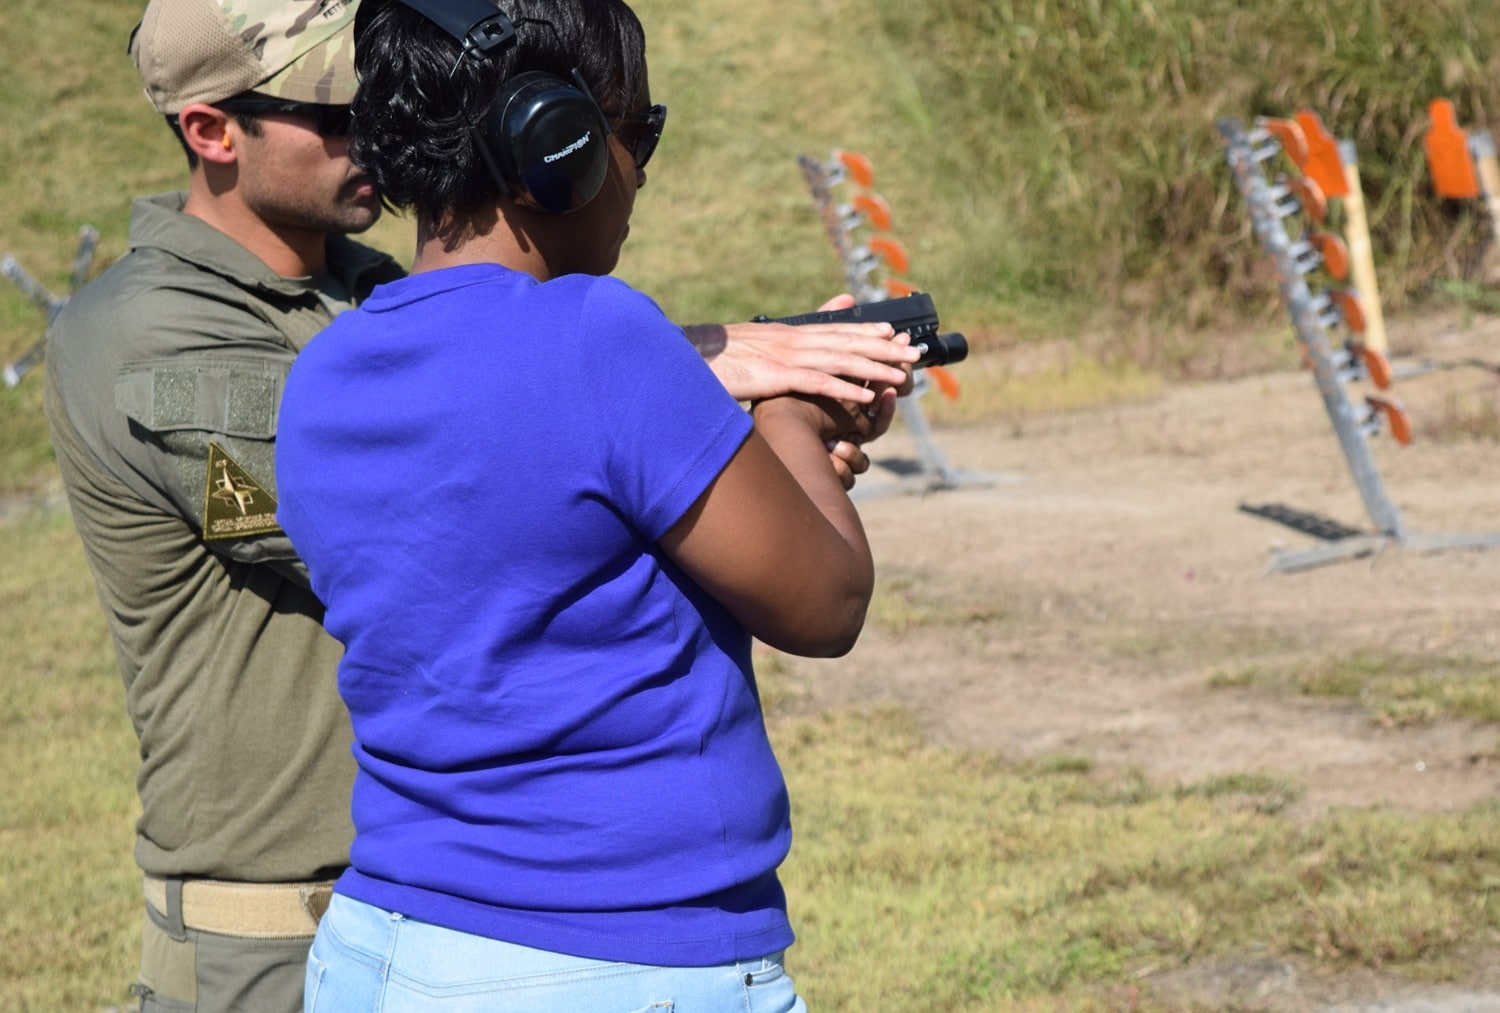 An SRT agent shows one of the attendants how to hold and shoot the ATF issued Glock 22 .40-caliber pistol. (Photo: Daniel Terrill/Guns.com)